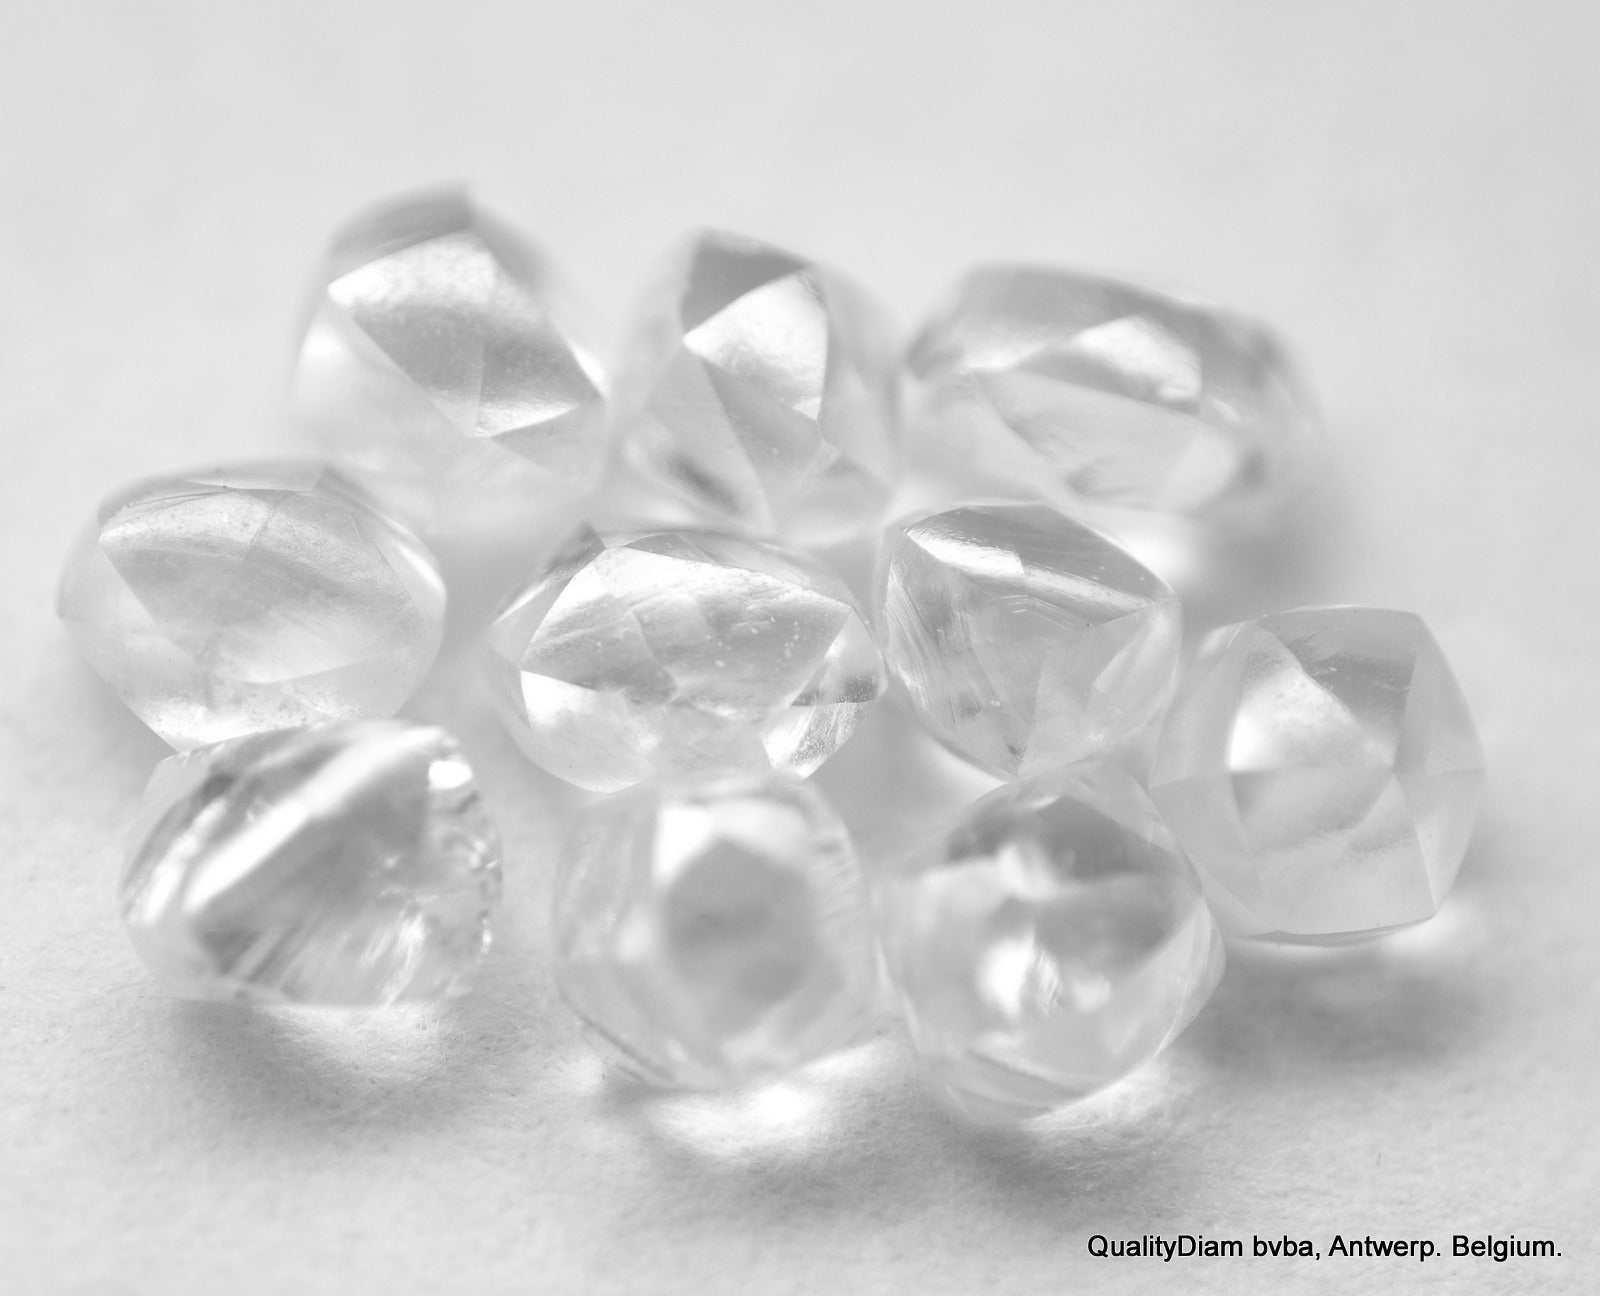 1.23 CARAT High Quality Uncut and Raw Natural Diamonds in Bright White